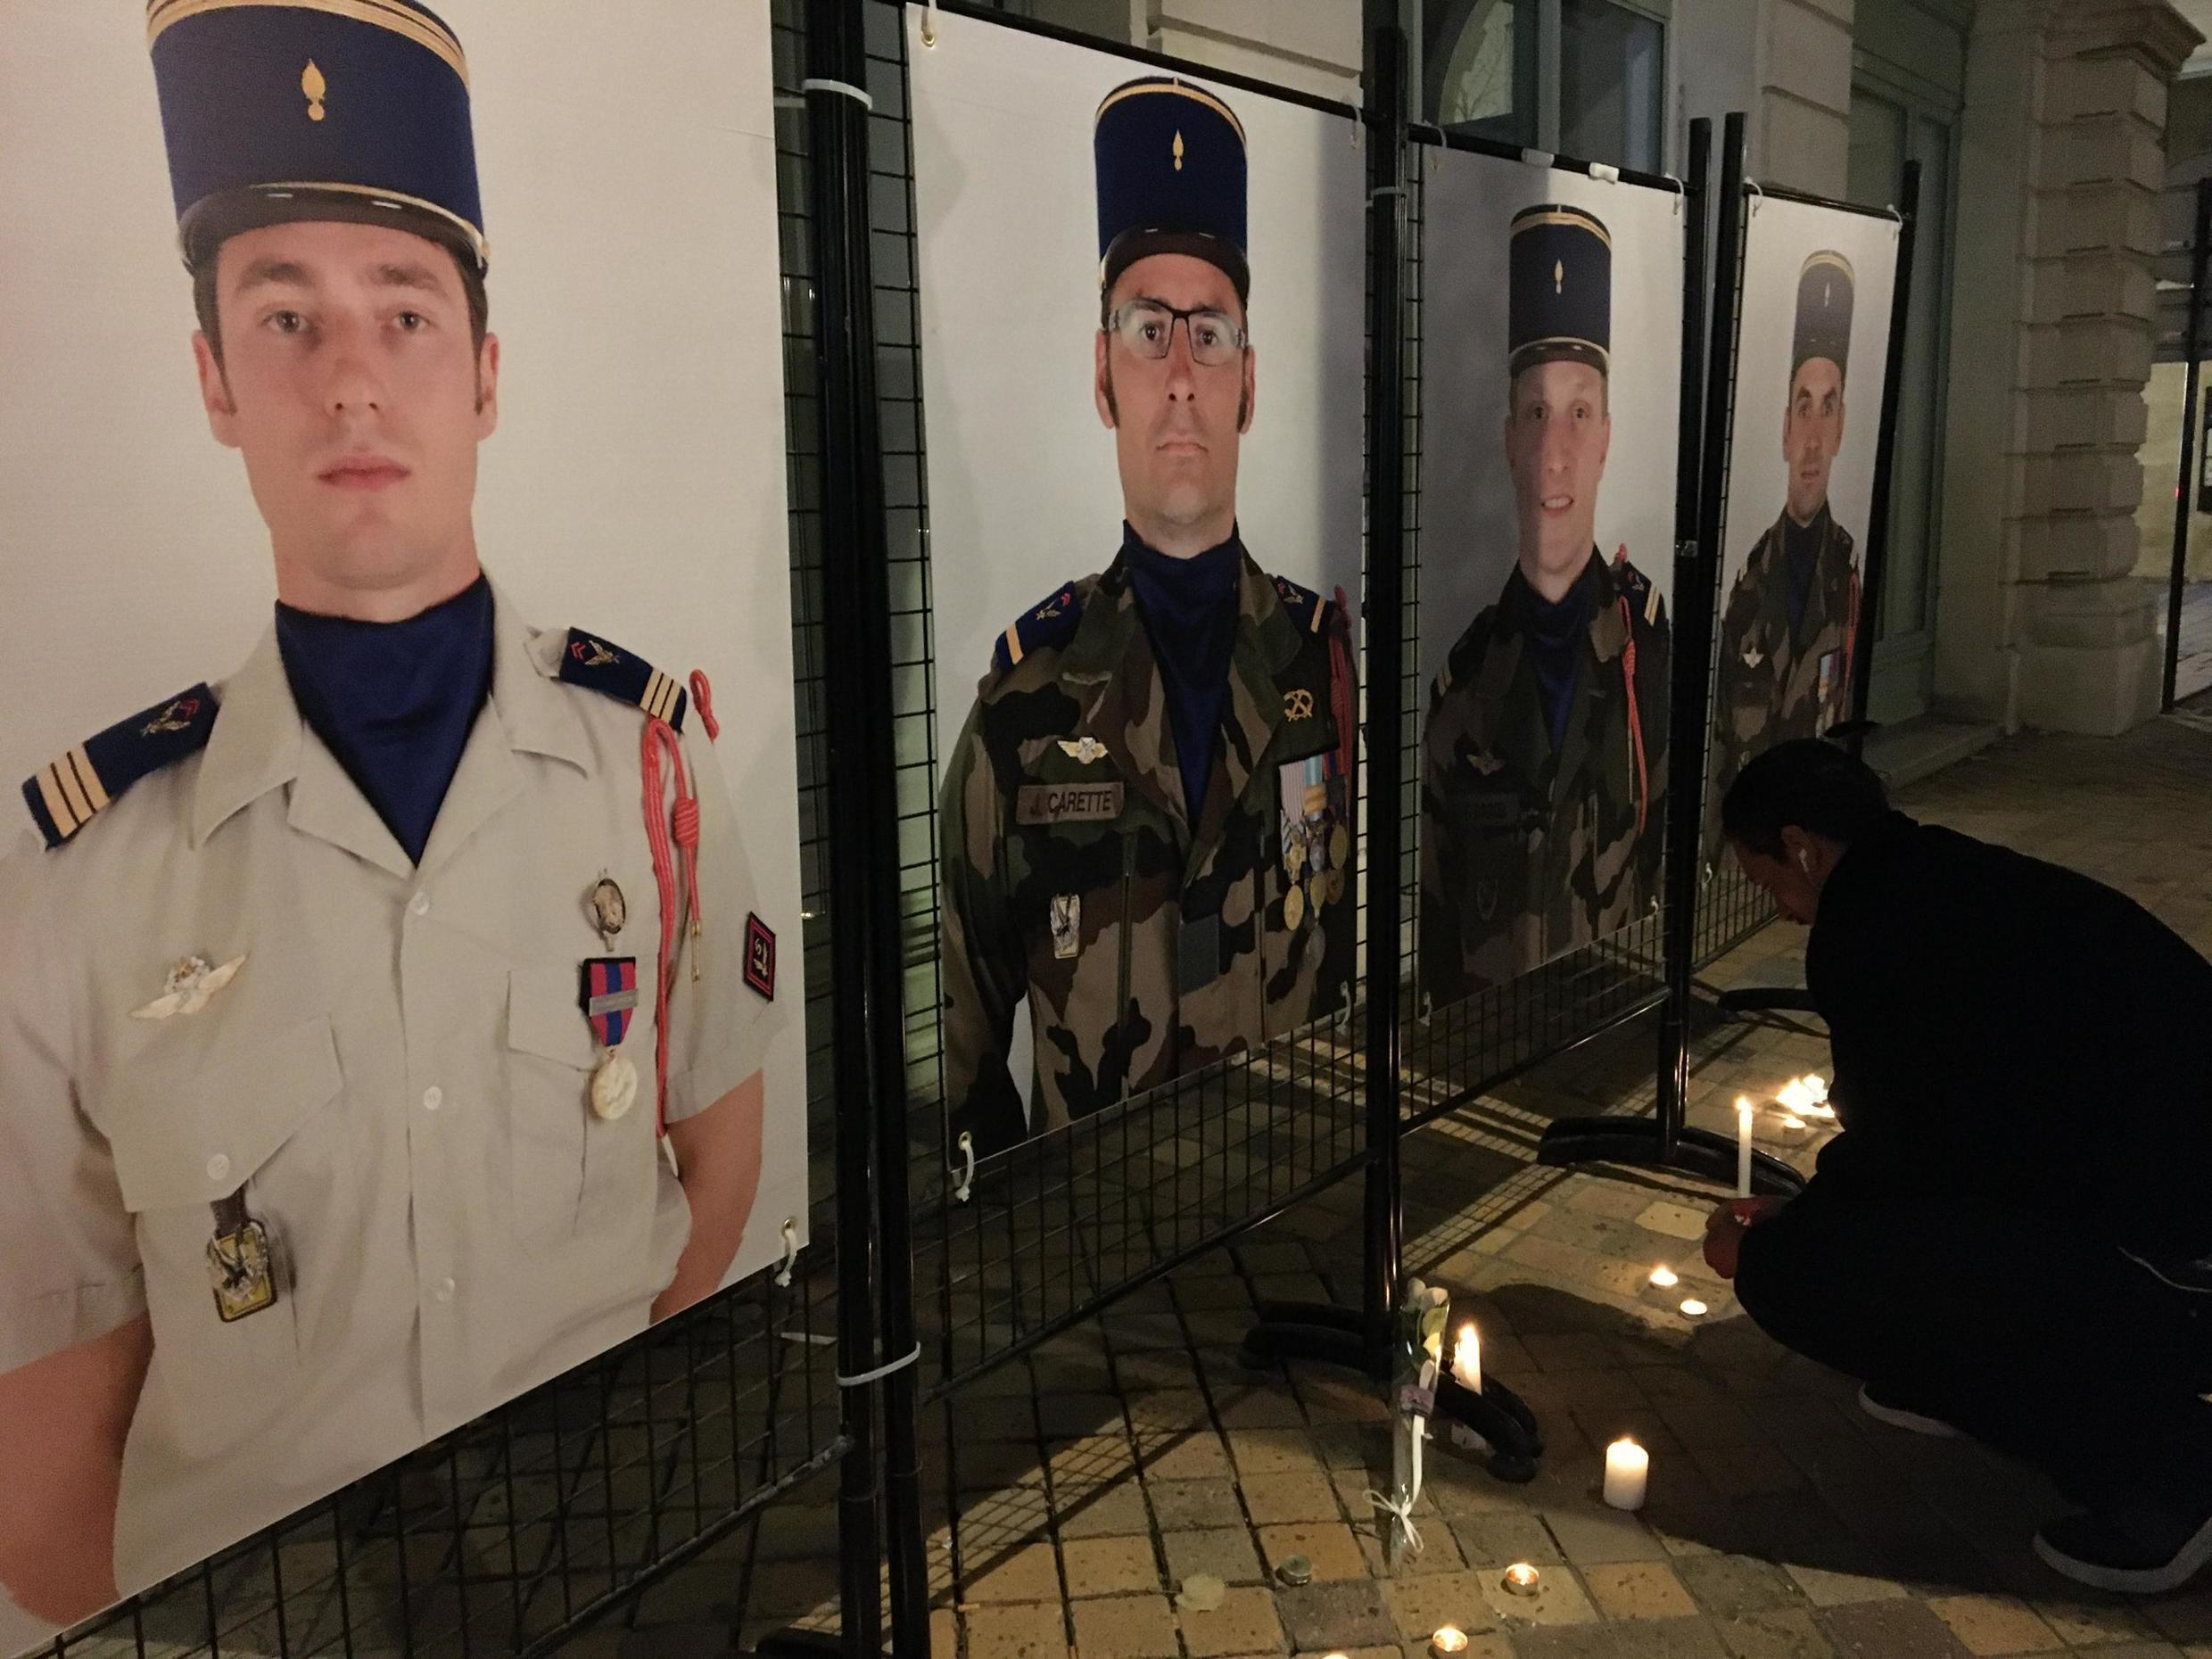 Portraits of soldiers who died were displayed in Pau, where a tribute was held. Seven of the men were from a helicopter unit based in Pau. 26 November 2019